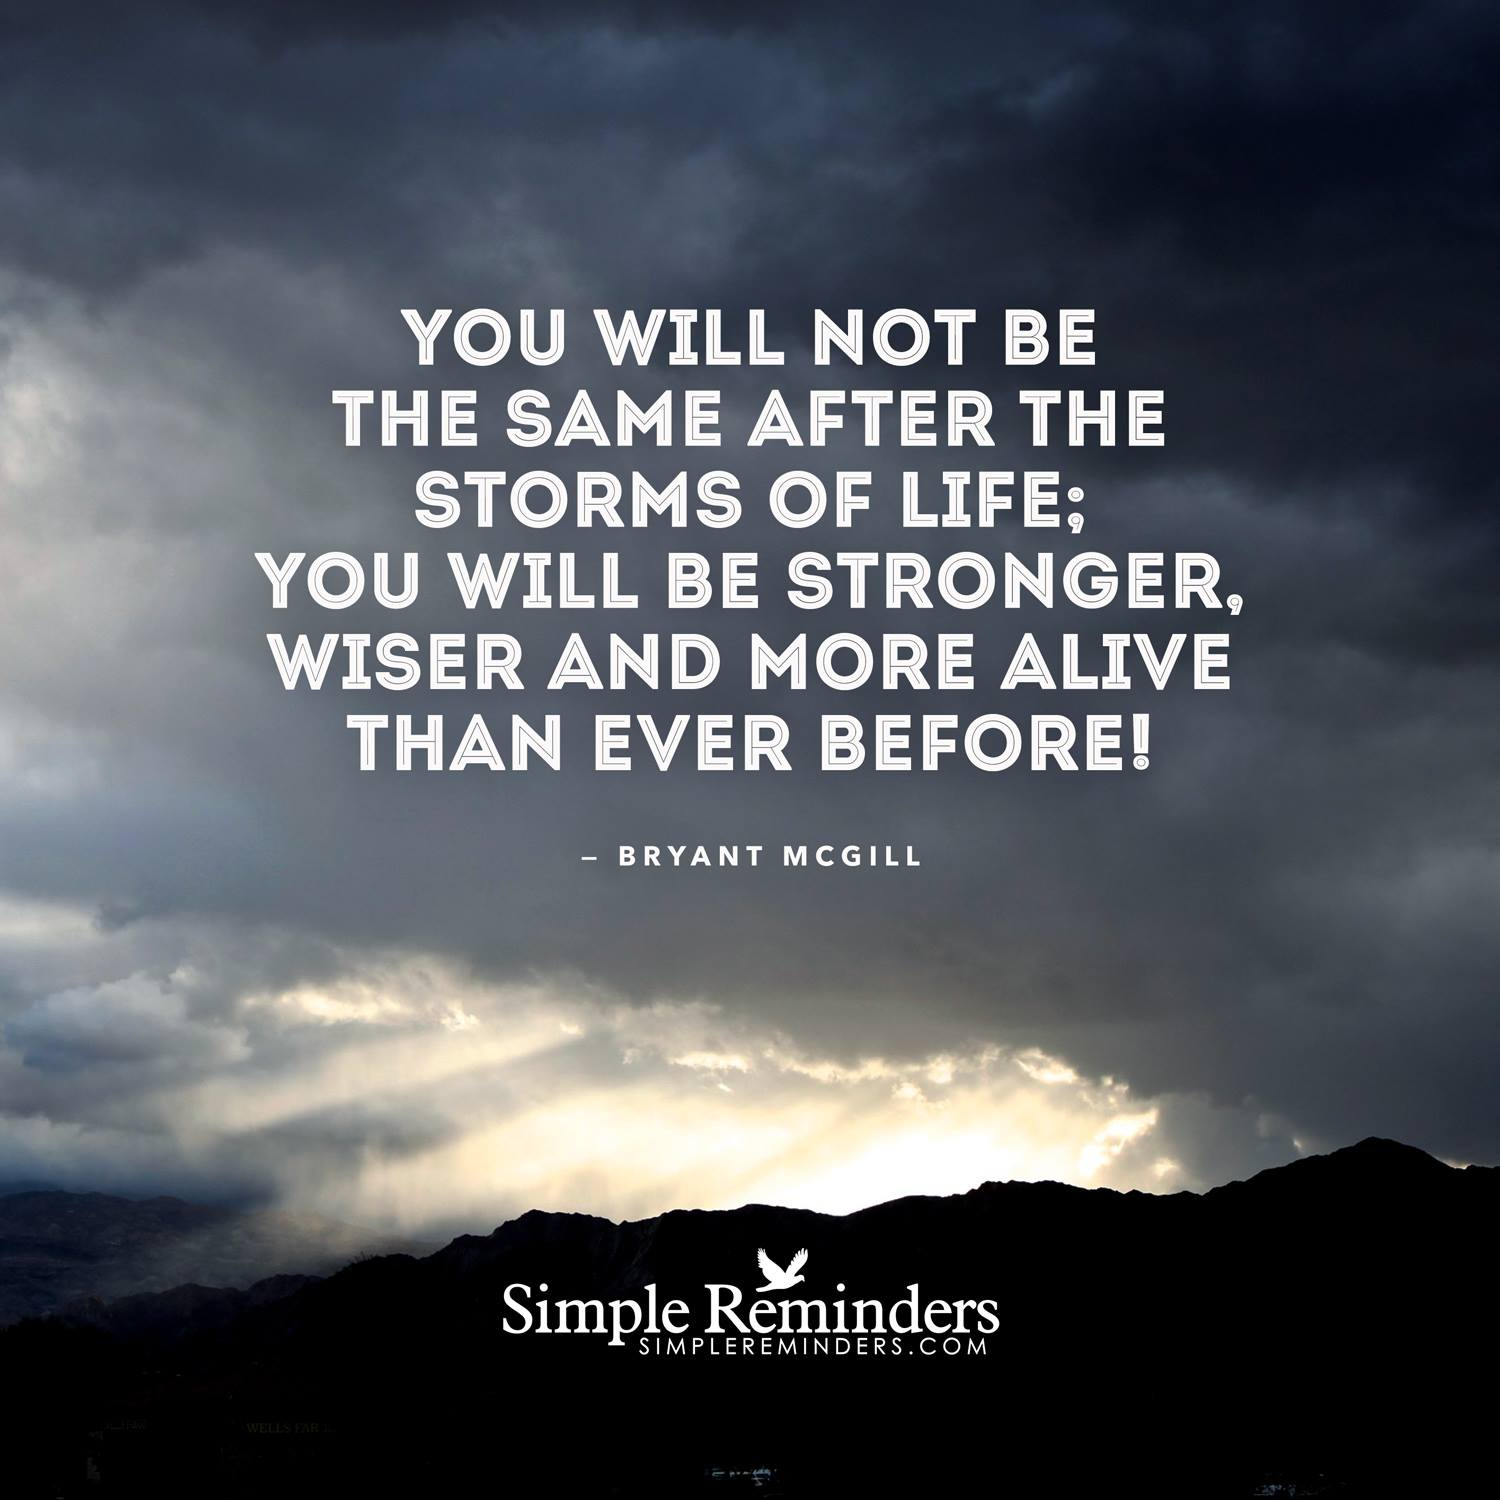 transcending the storms of suffering - Bryan McGill - Simple Reminders - Zen Thinking Quote